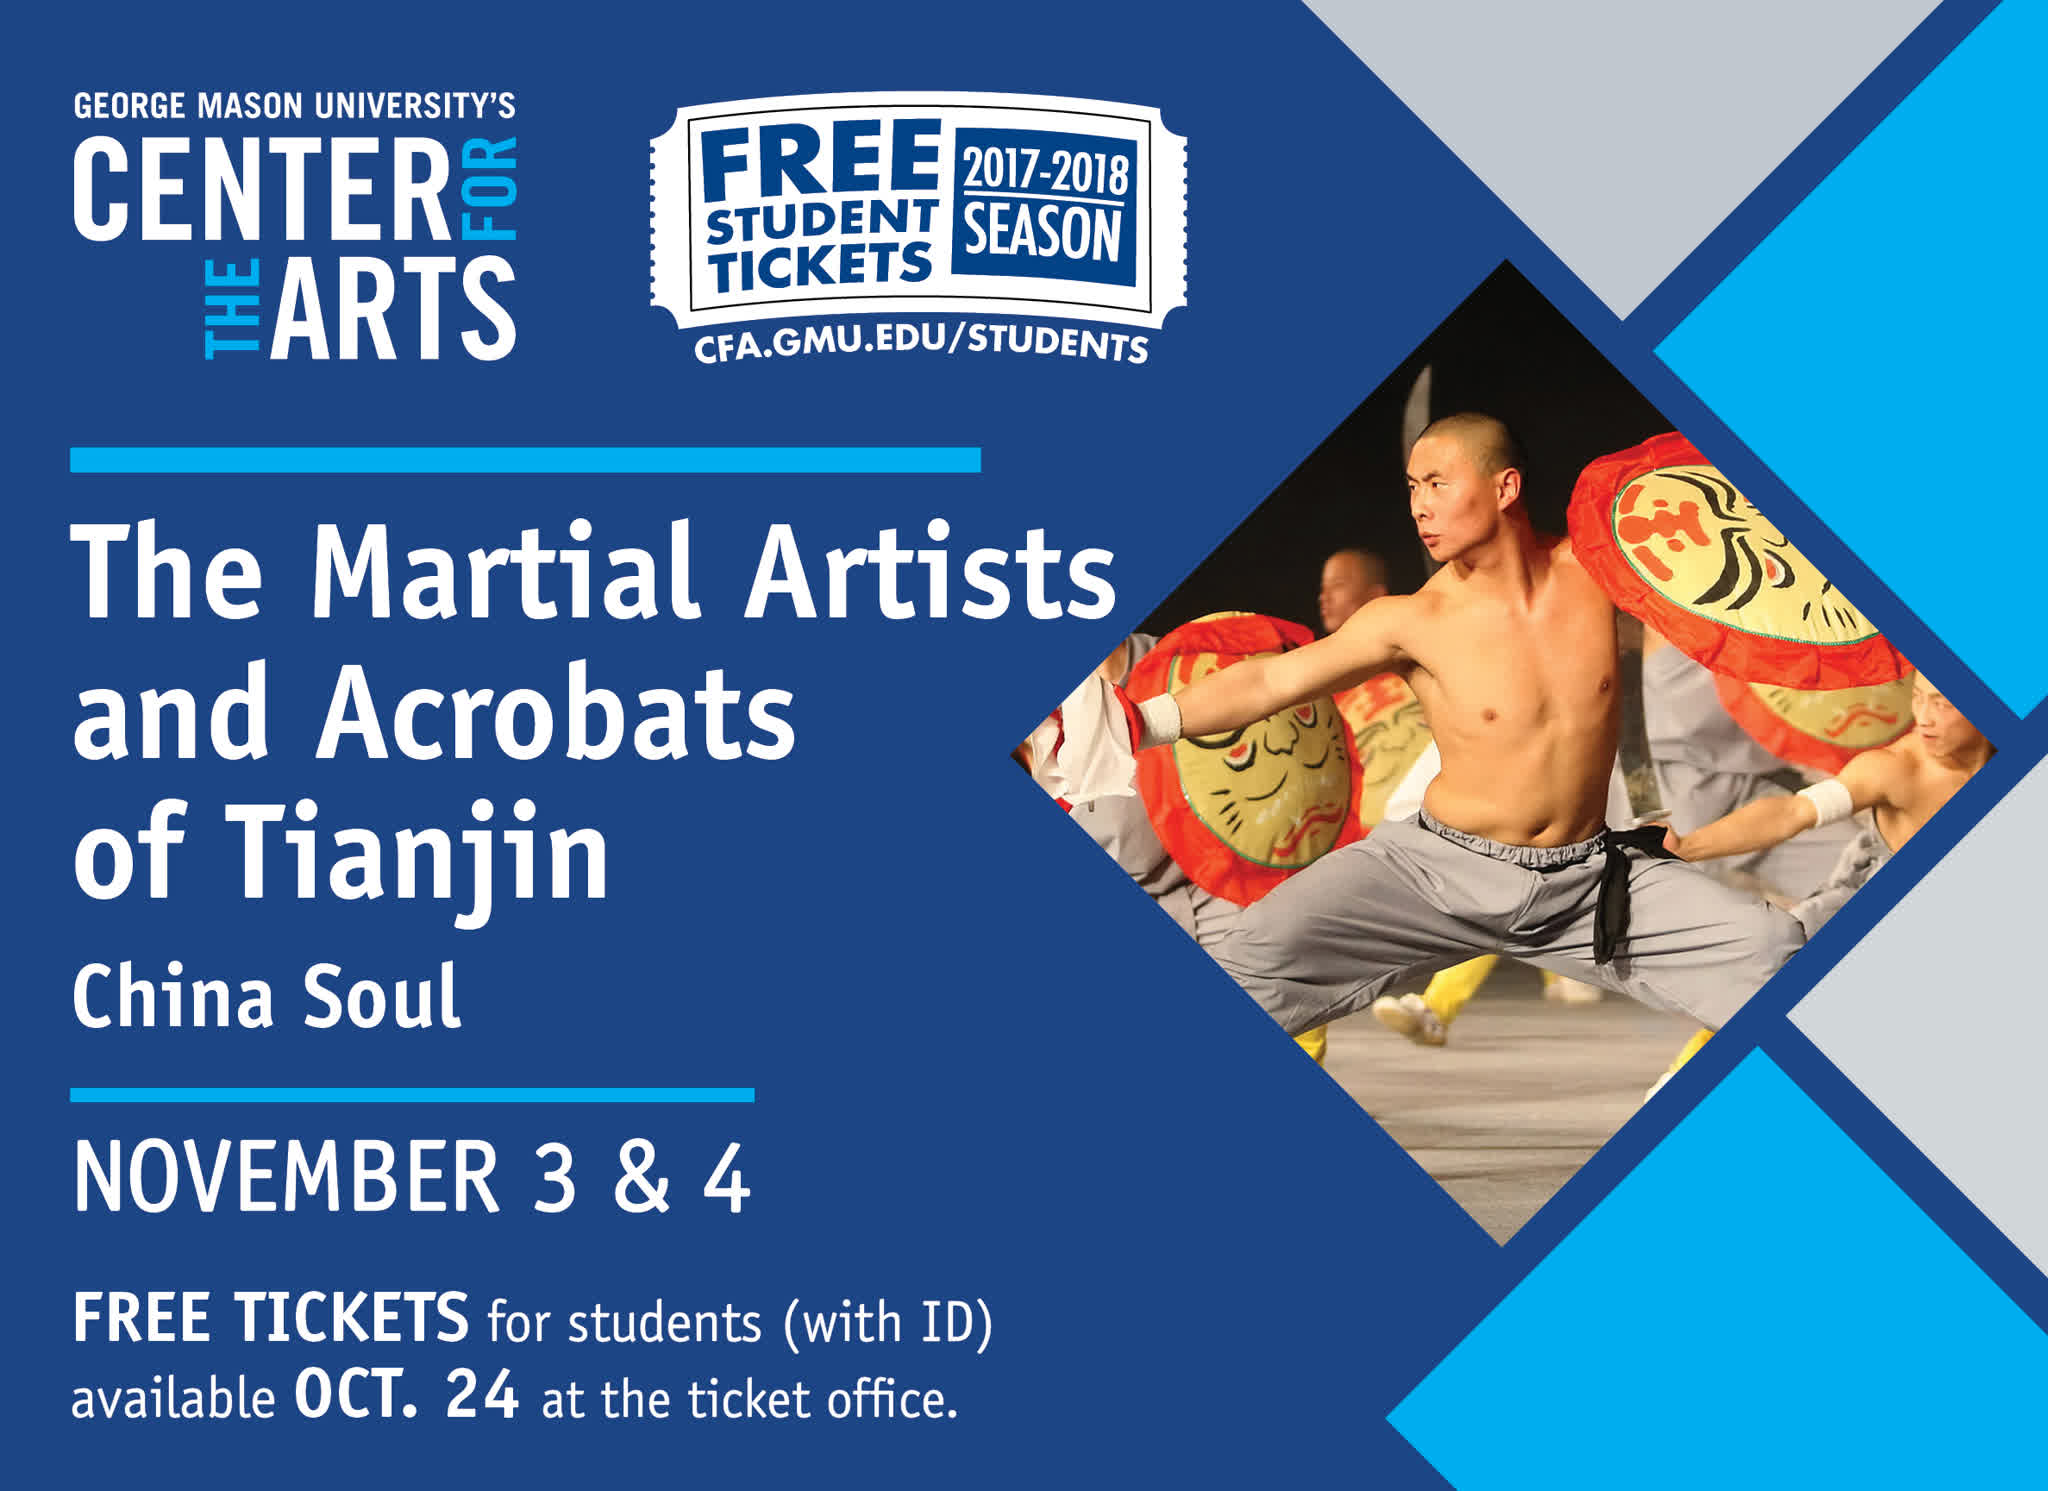 Information regarding Martial Artists and Acrobats of Tianjin is as follows Start date (when you would like your content to be posted) is October 17 2017 and End Date  (when you would like your content to be removed from the screens) is October 27 2017 and File is Browse and Name is Bruce Scott and Email is bscott15@gmu.edu and Group Name is CVPA and File Name is 03_MartialArtists_1103-1104_comp.jpg and Panel for your ad to be displayed is Main and Name of Ad/Event is Martial Artists and Acrobats of Tianjin and Affiliation is Mason Department and